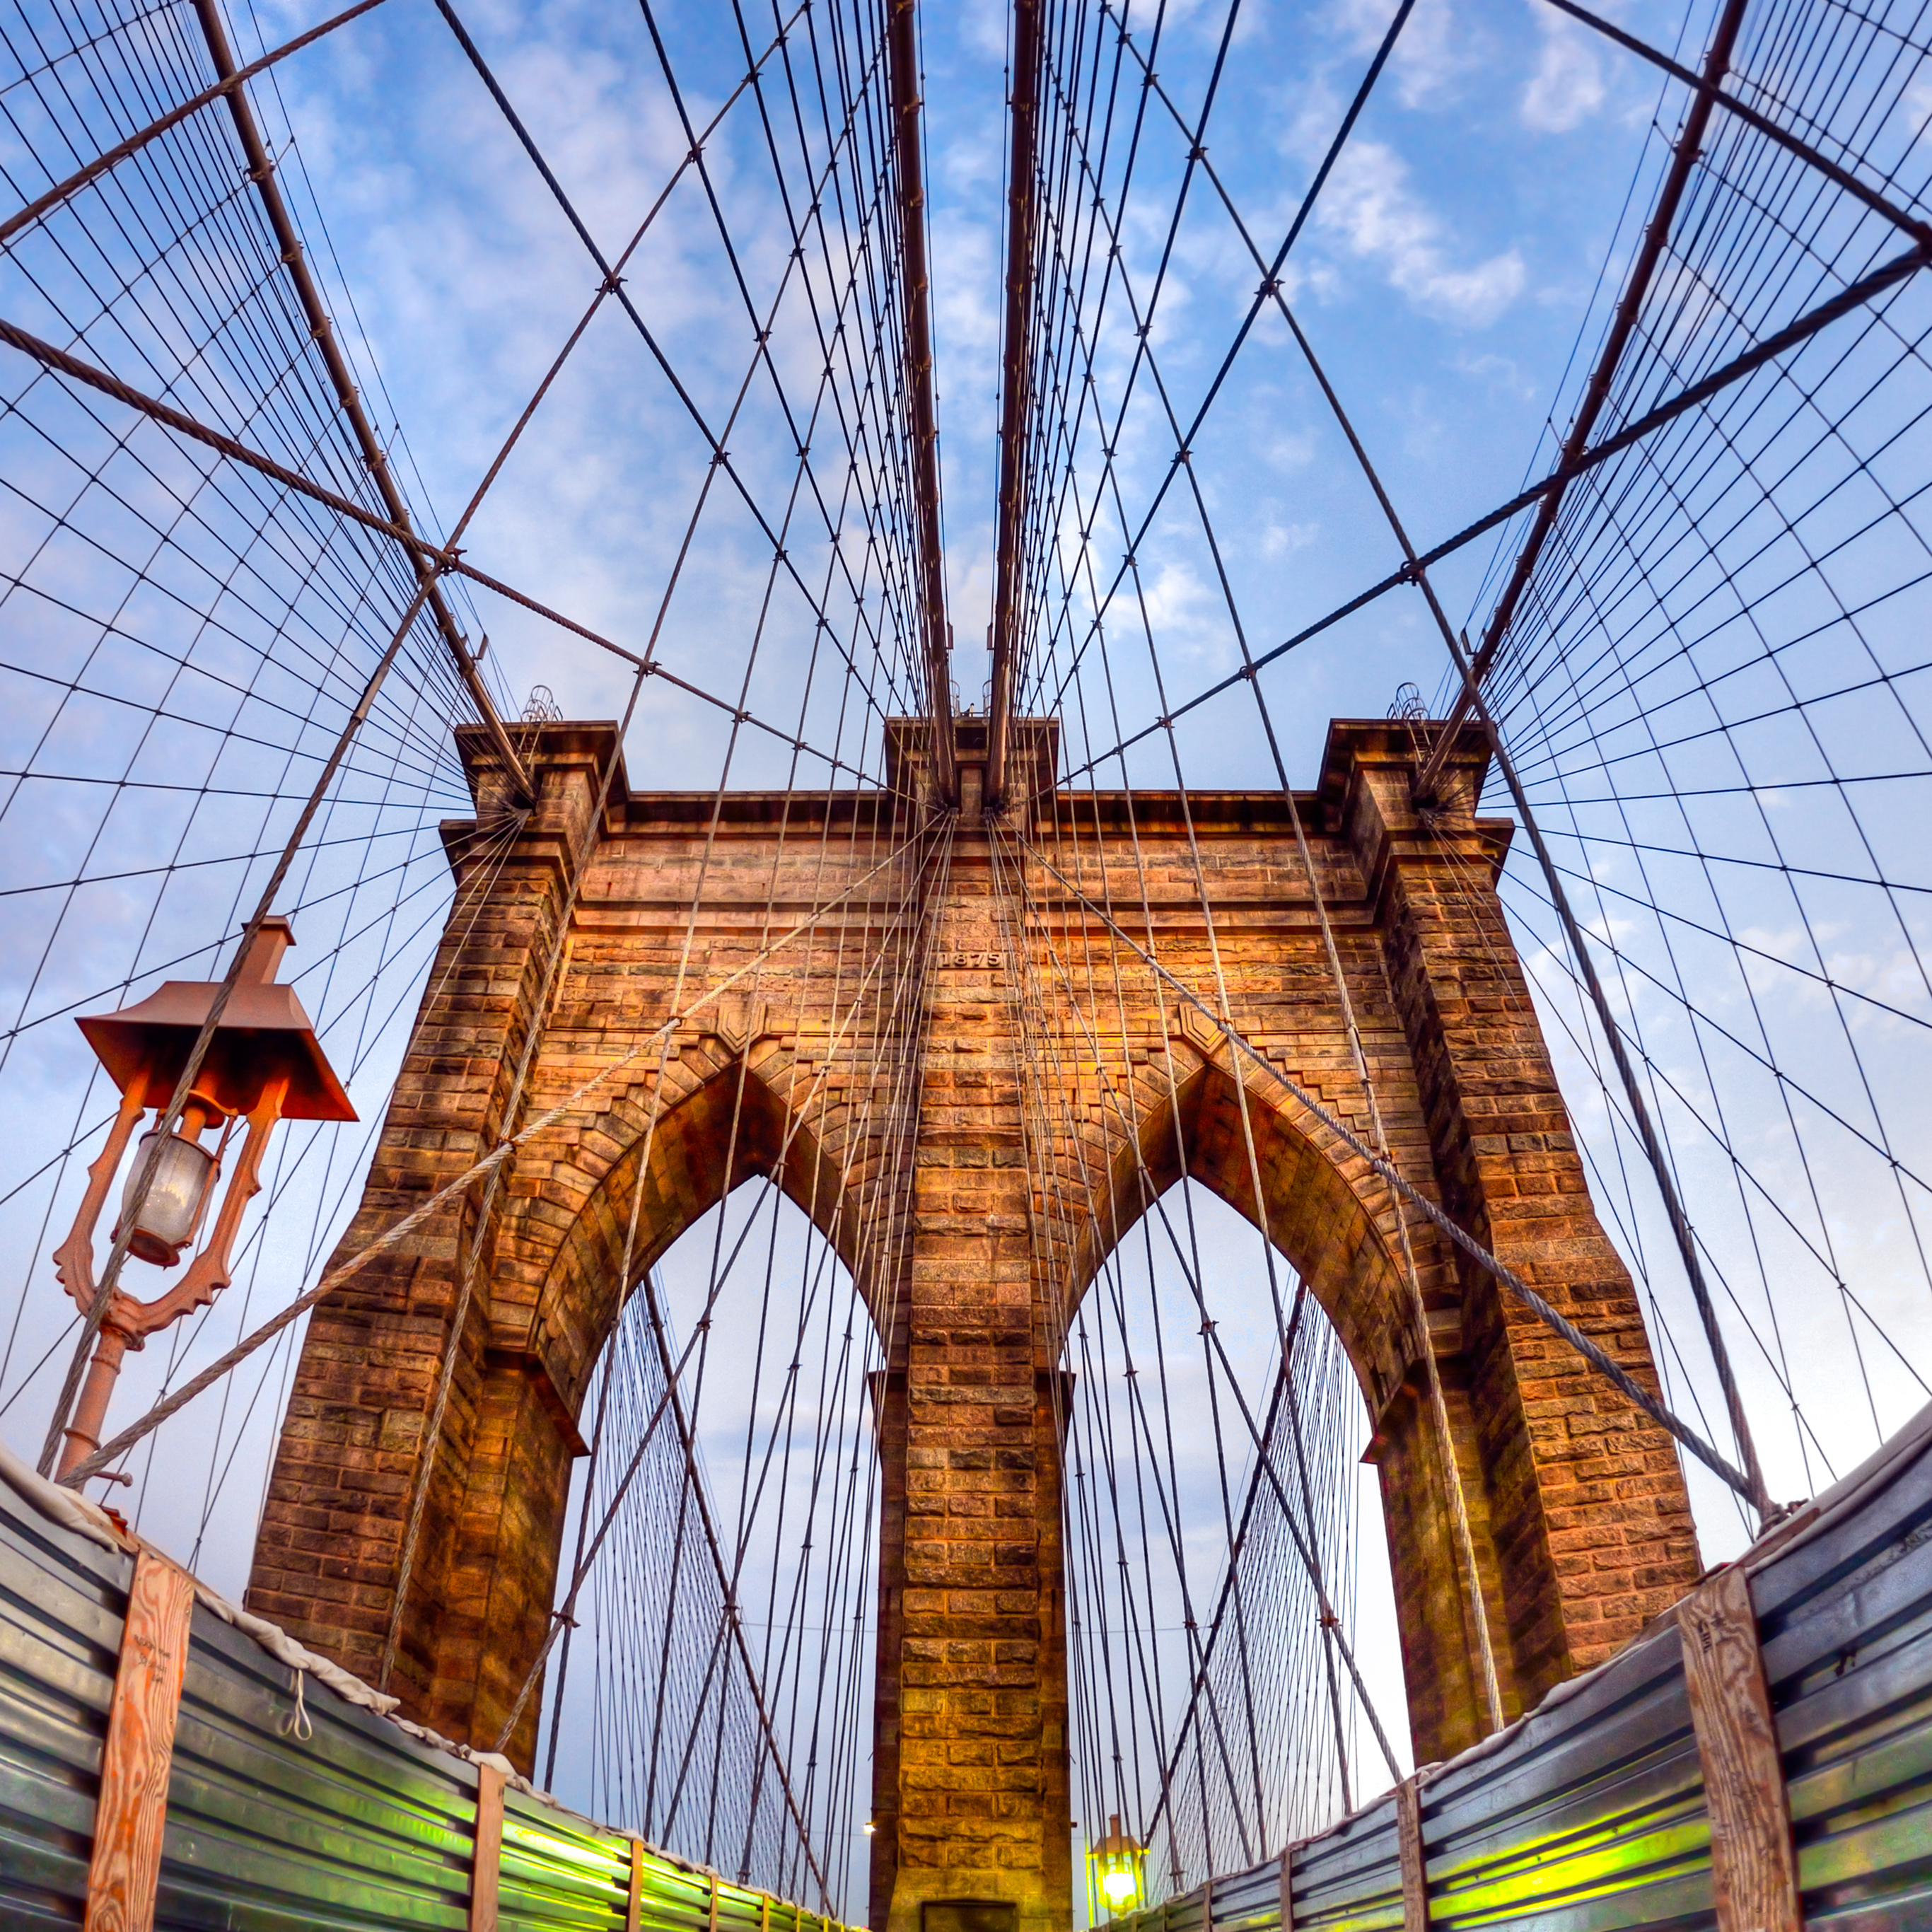 Brooklyn Bridge Renovation iPad Pro wallpaper_2732x2732